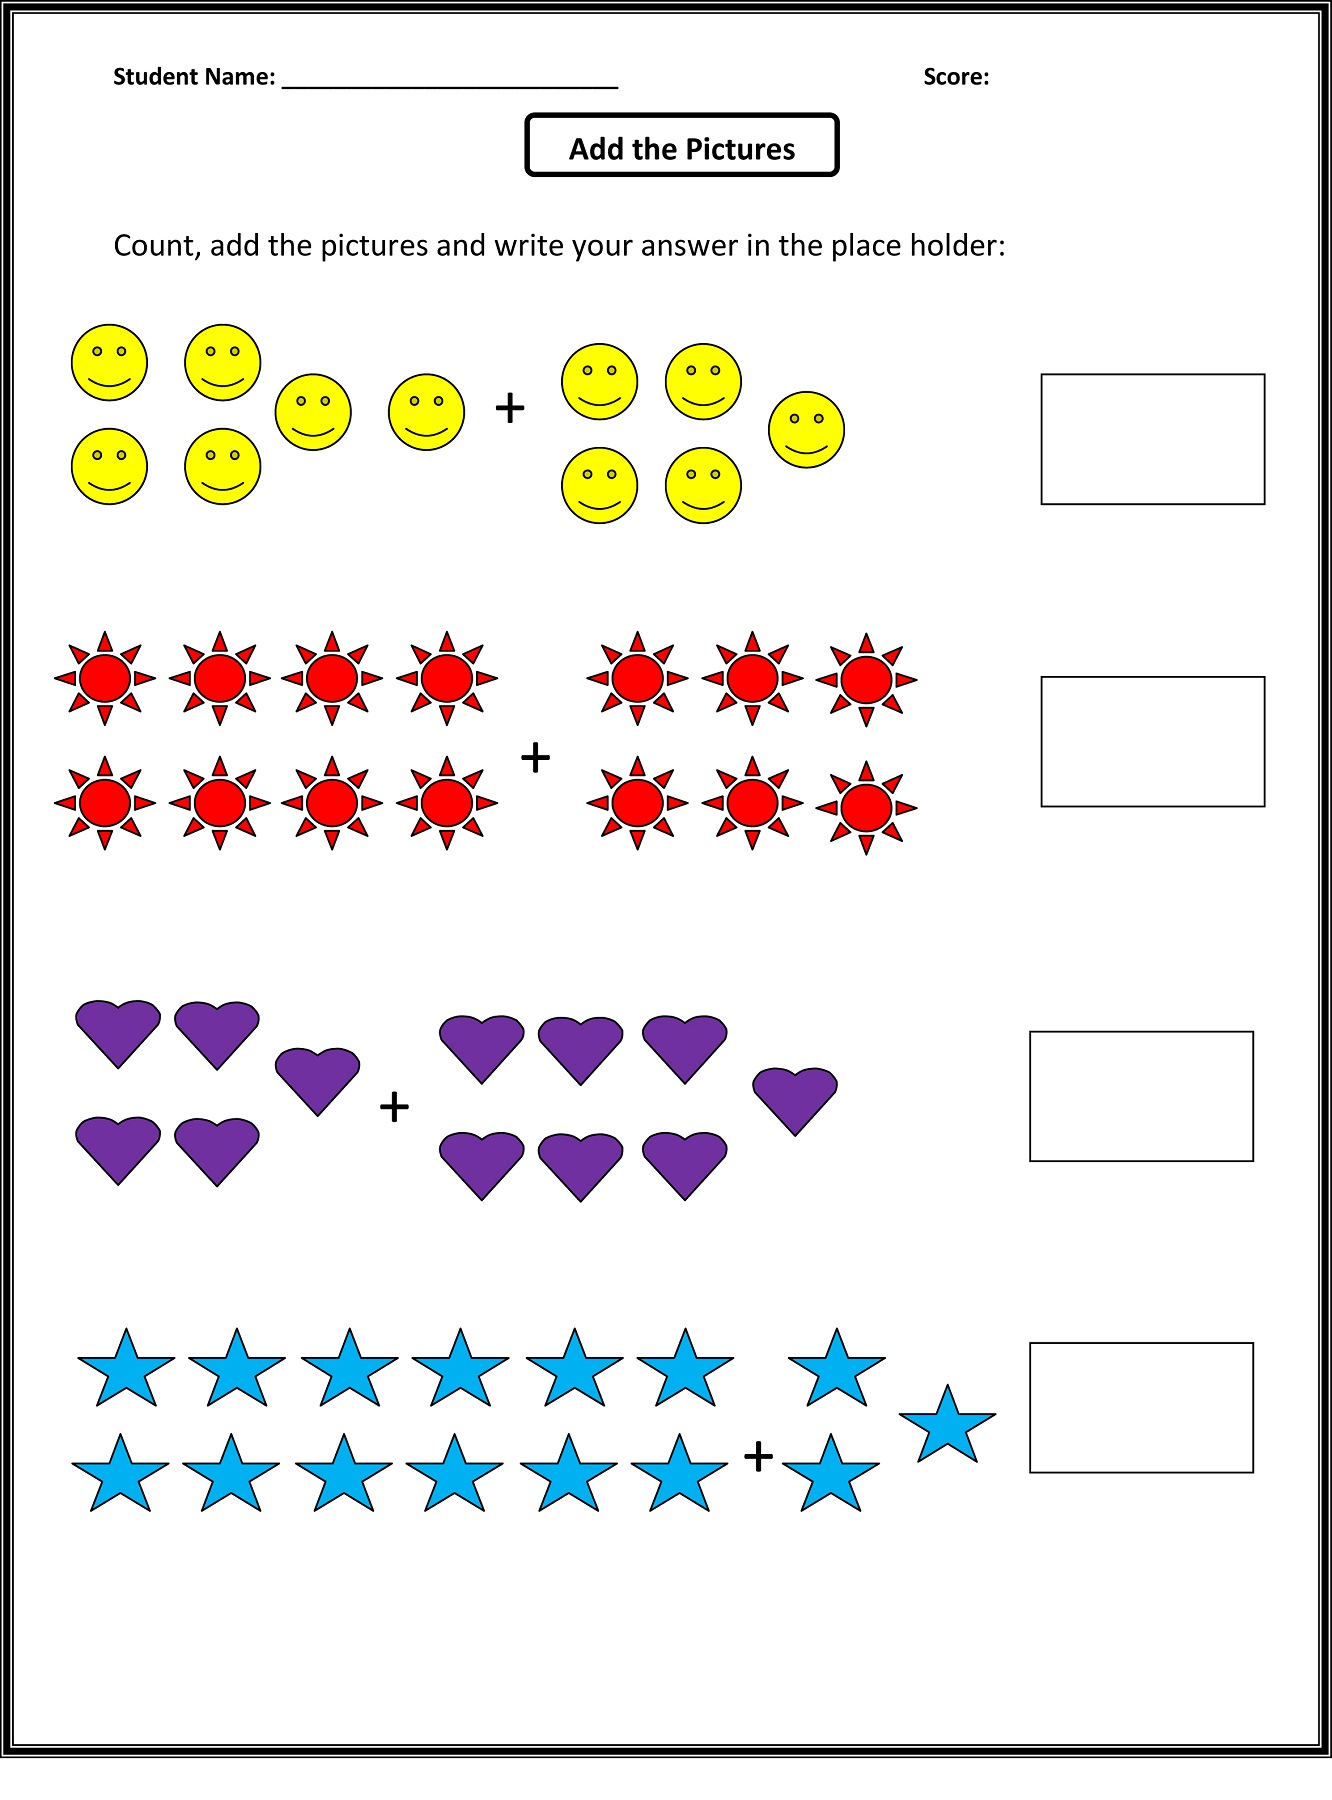 Worksheet Math Exercise For Grade 1 math exercises for grade 1 ...